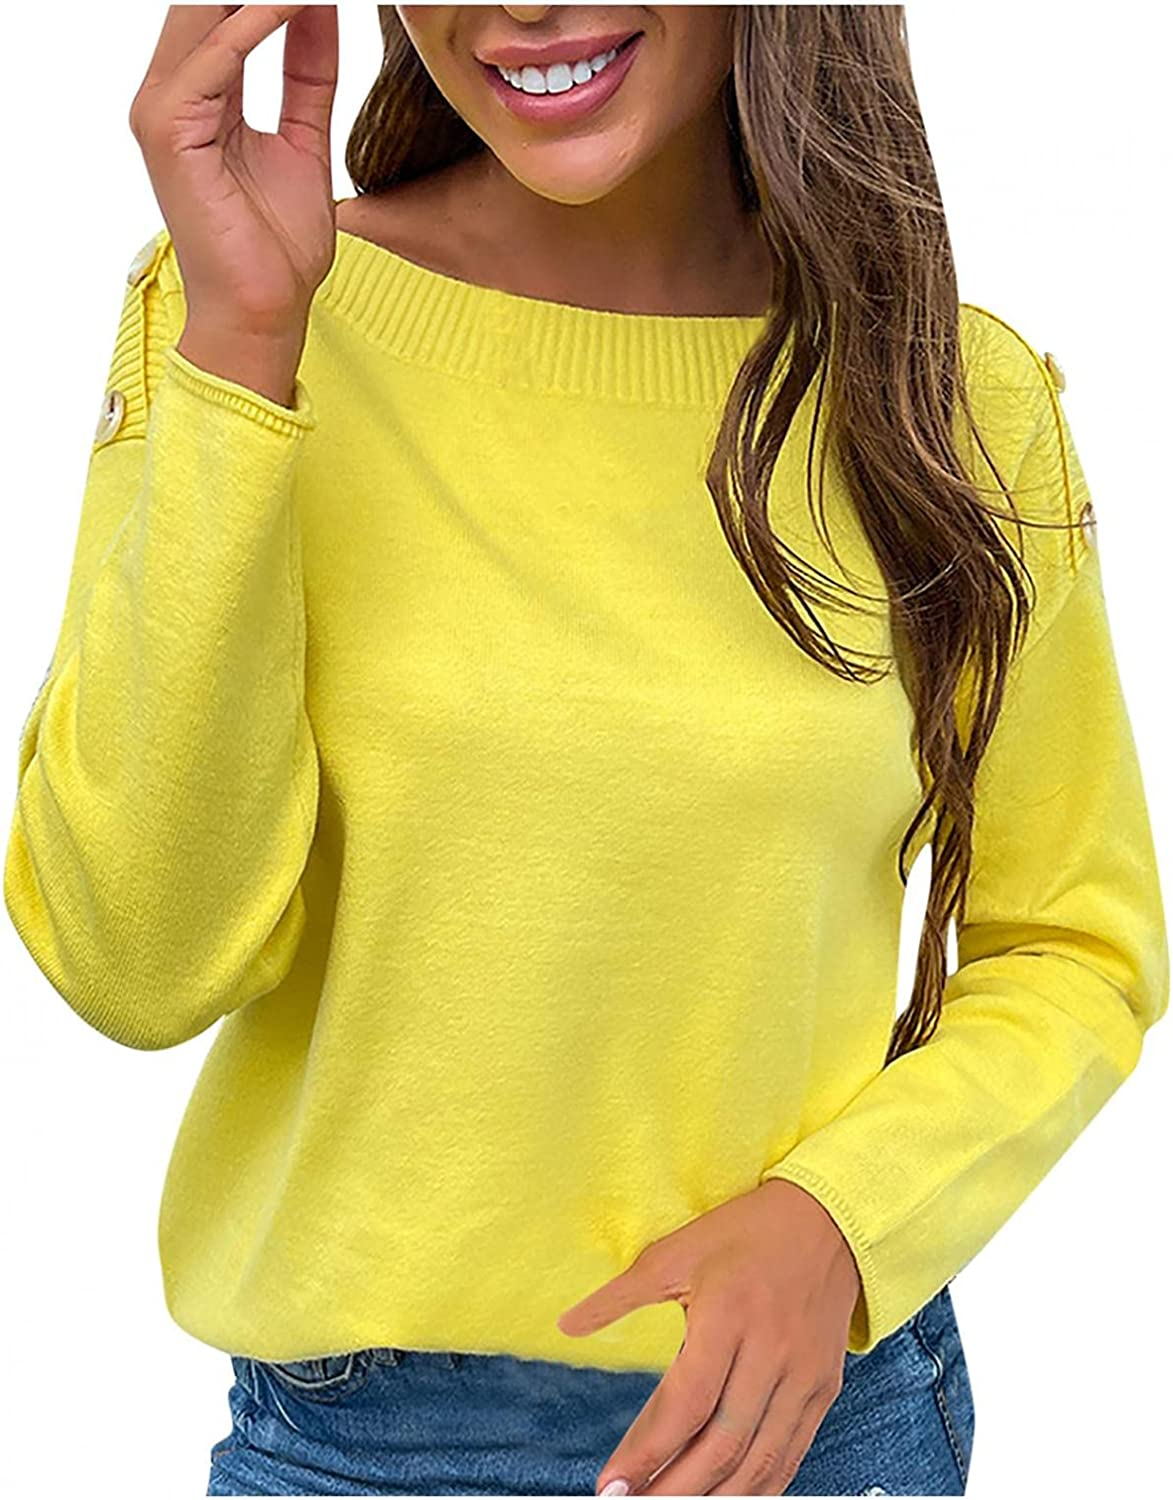 Afelkas Sweaters for Women O-Neck Shoulder Buttons Pullover Solid Color Casual Bottoming Shirt Loose Cozy Knitwear